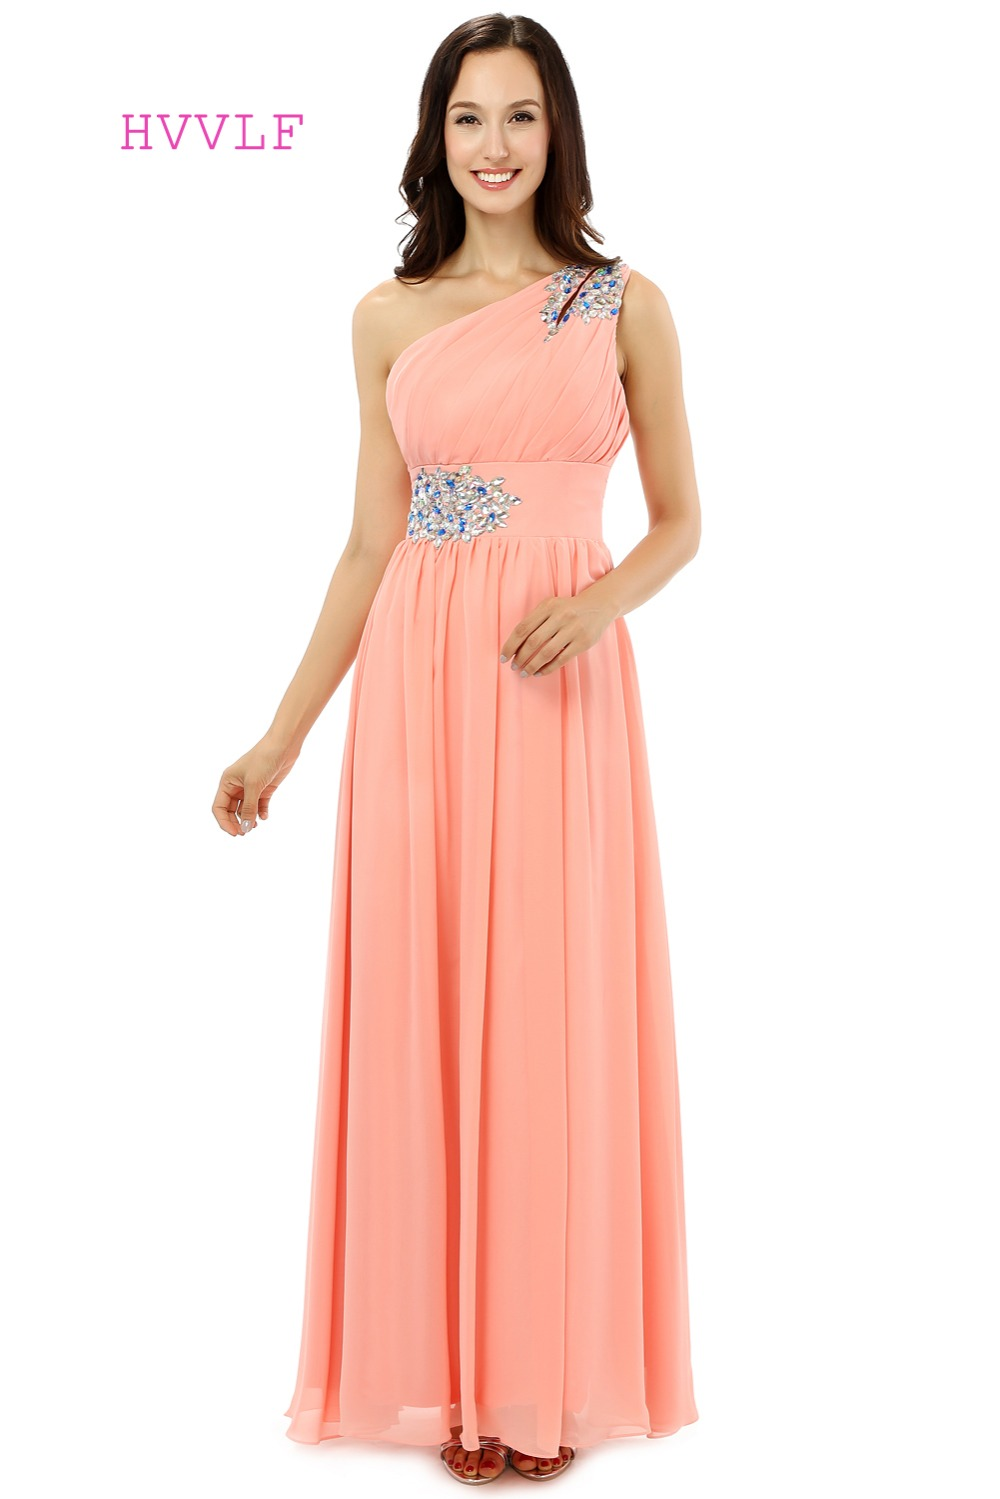 hvvlf 2017 cheap bridesmaid dresses under 50 a line one shoulder floor length coral chiffon crystals wedding party dresses